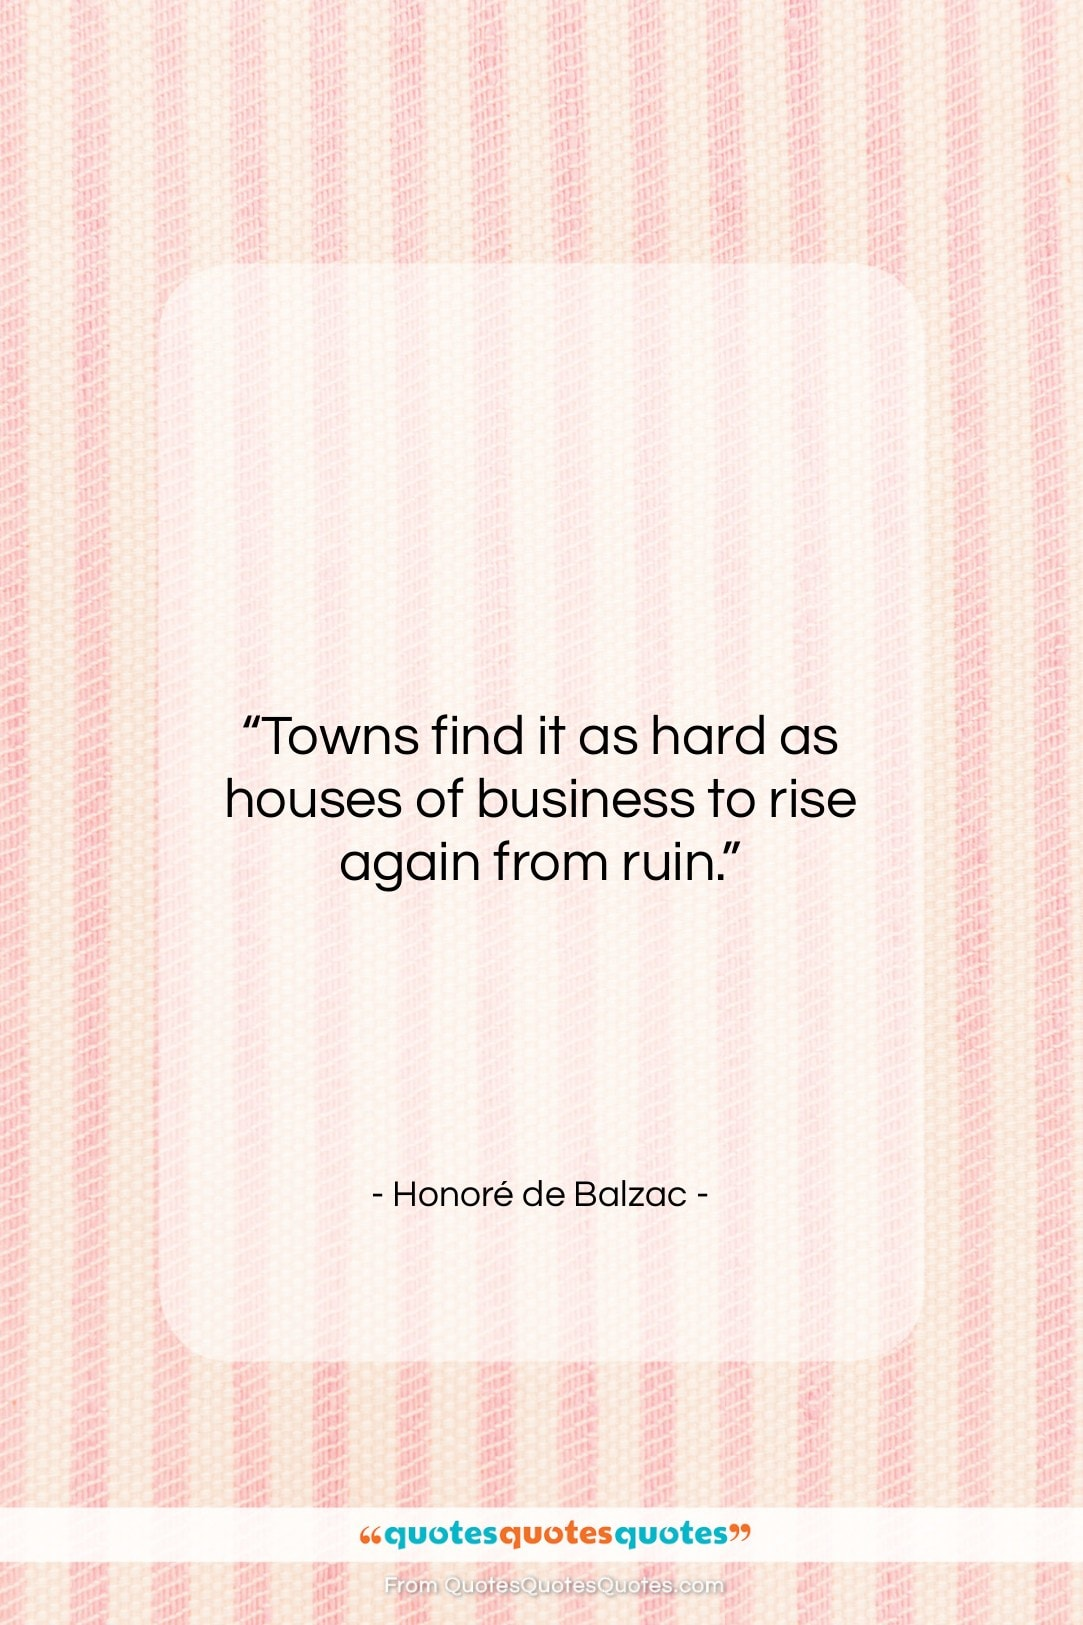 """Honoré de Balzac quote: """"Towns find it as hard as houses…""""- at QuotesQuotesQuotes.com"""